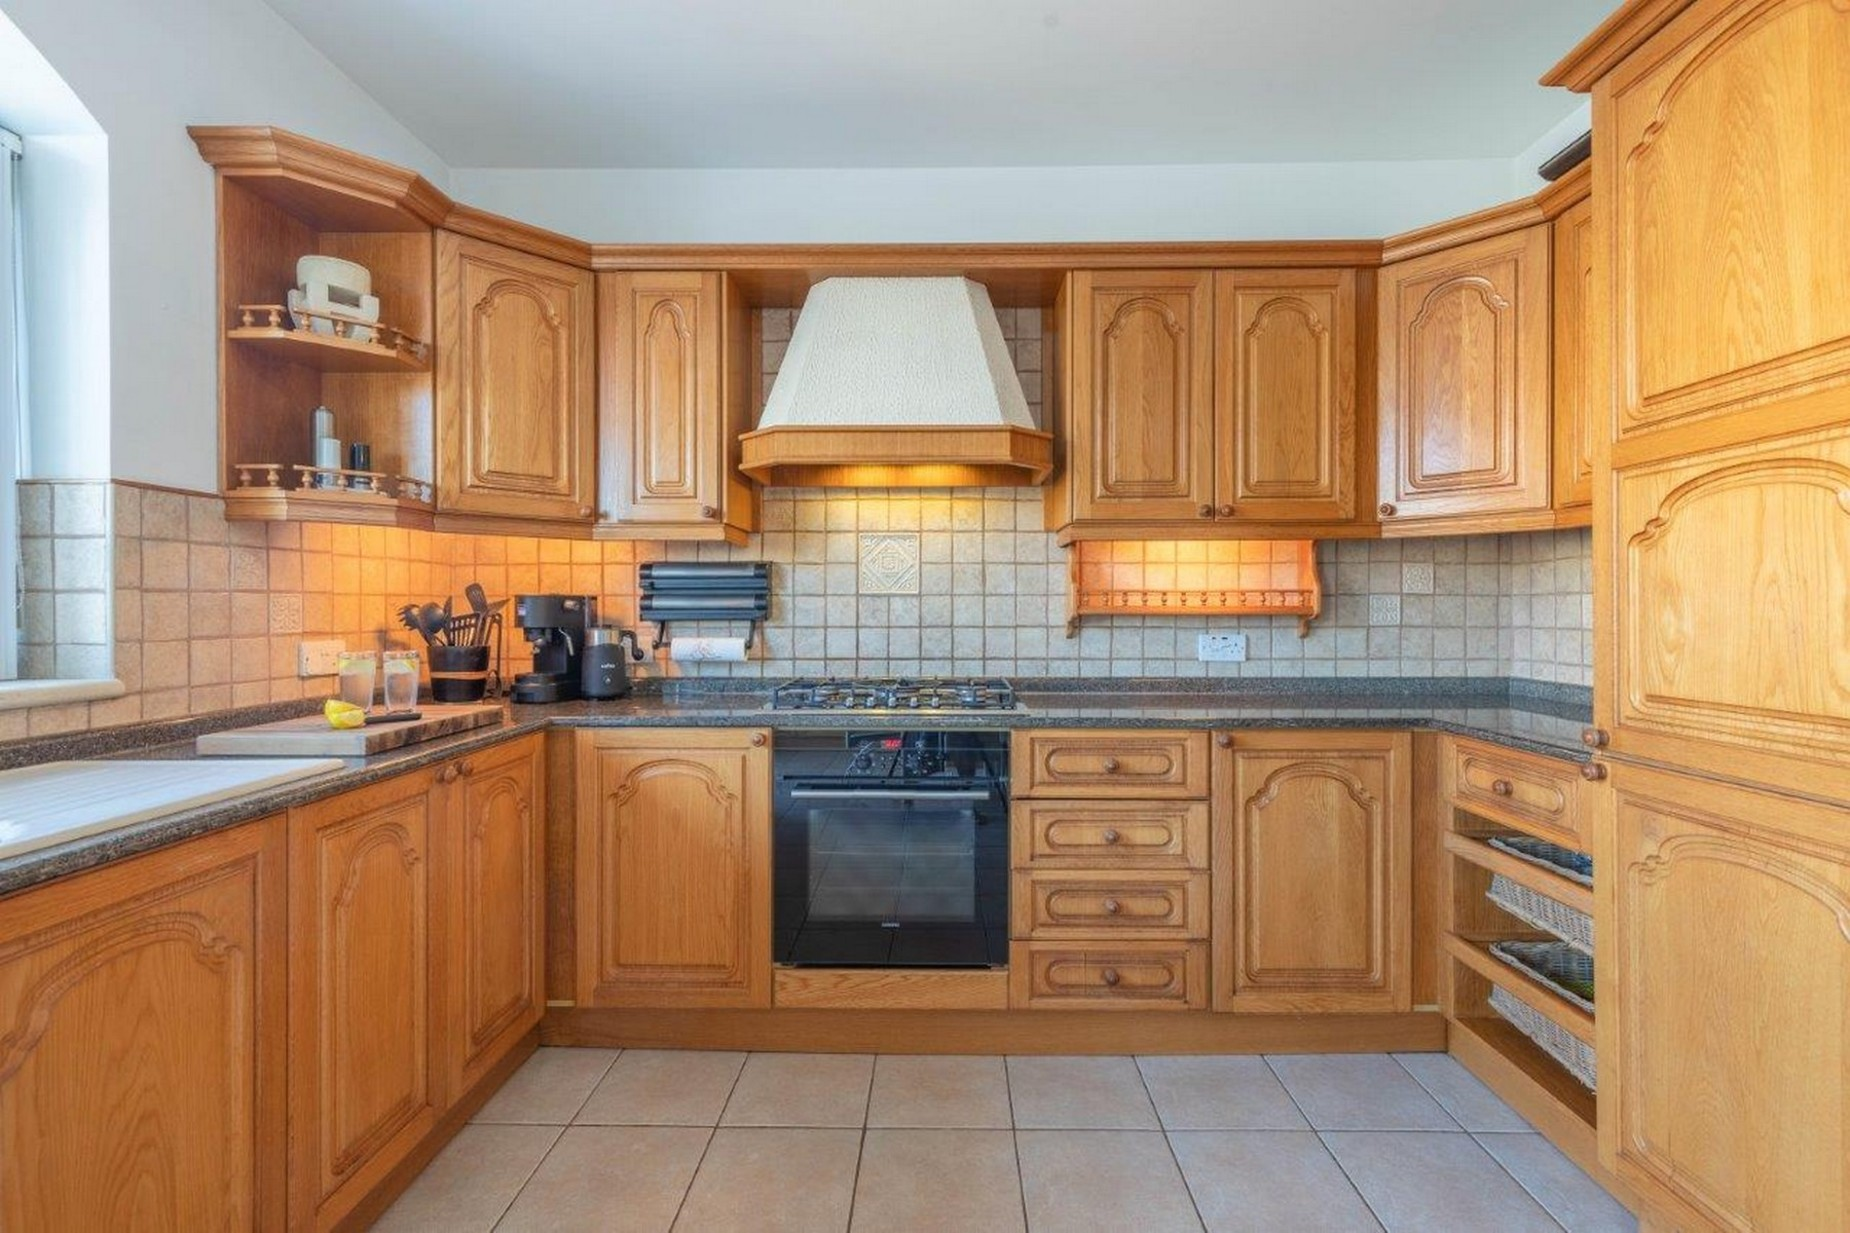 3 bed Apartment For Sale in Attard, Attard - thumb 2